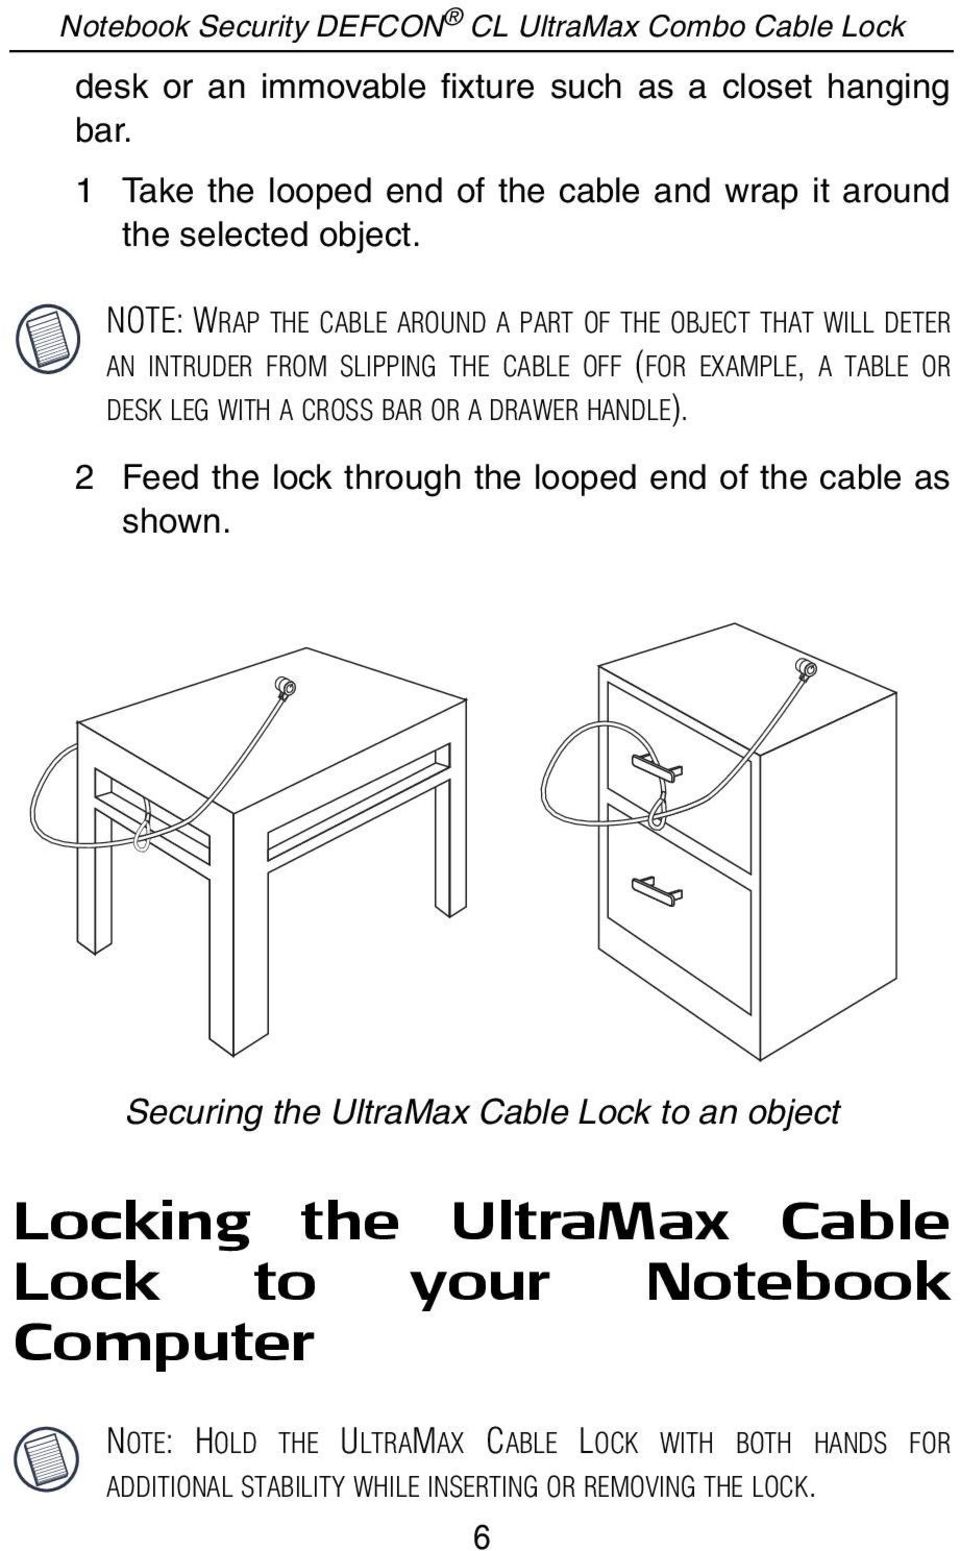 NOTE: WRAP THE CABLE AROUND A PART OF THE OBJECT THAT WILL DETER AN INTRUDER FROM SLIPPING THE CABLE OFF (FOR EXAMPLE, A TABLE OR DESK LEG WITH A CROSS BAR OR A